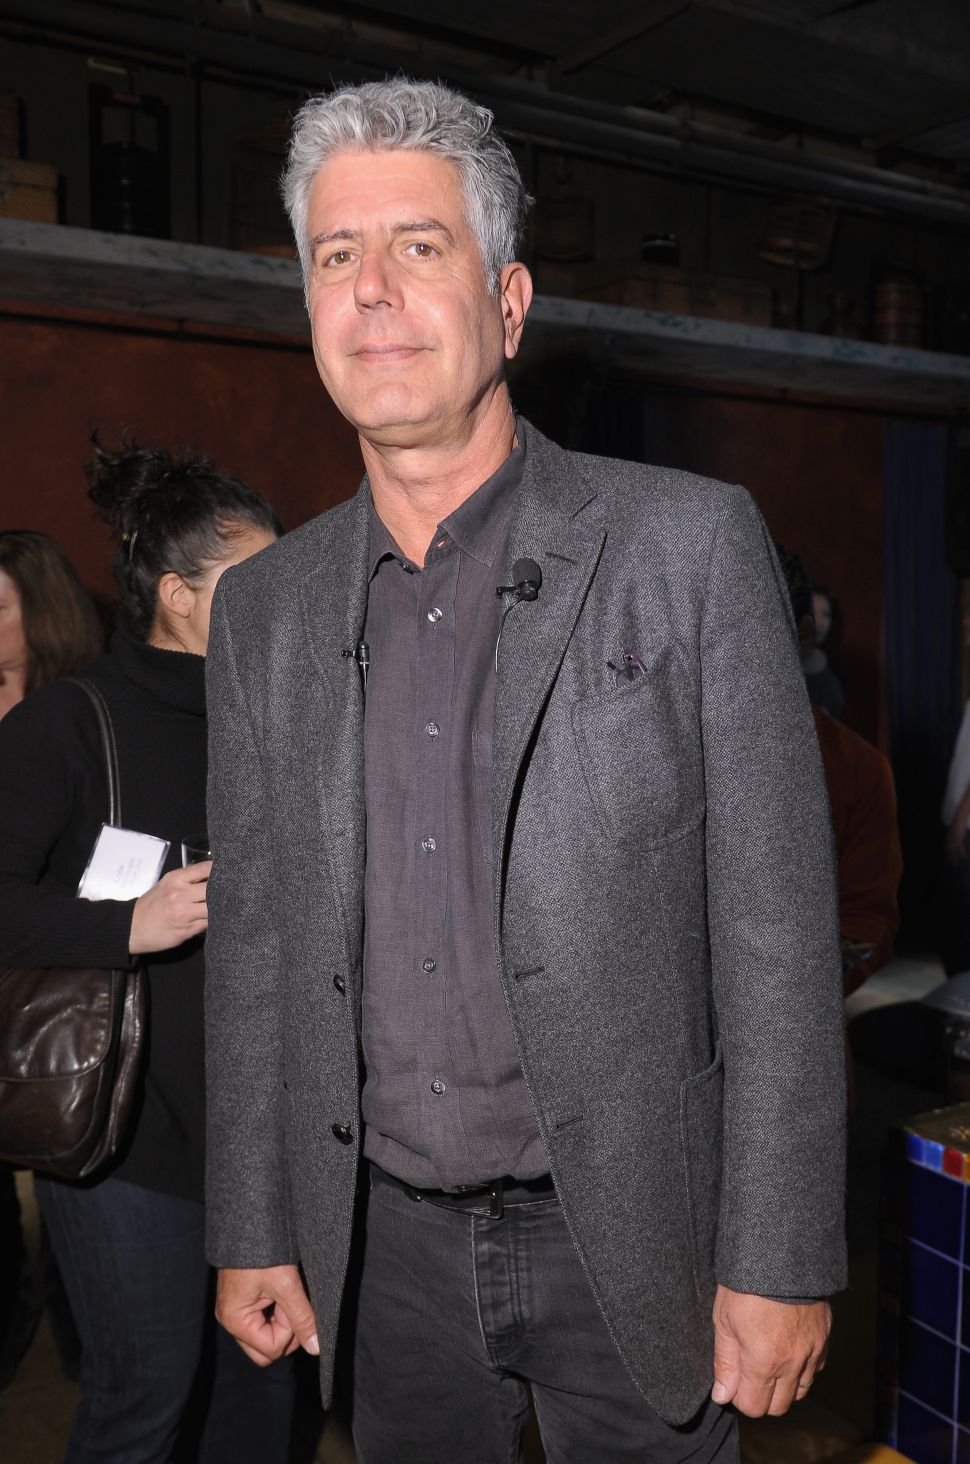 Afternoon Bulletin: Anthony Bourdain's Food Market Headed to Meatpacking